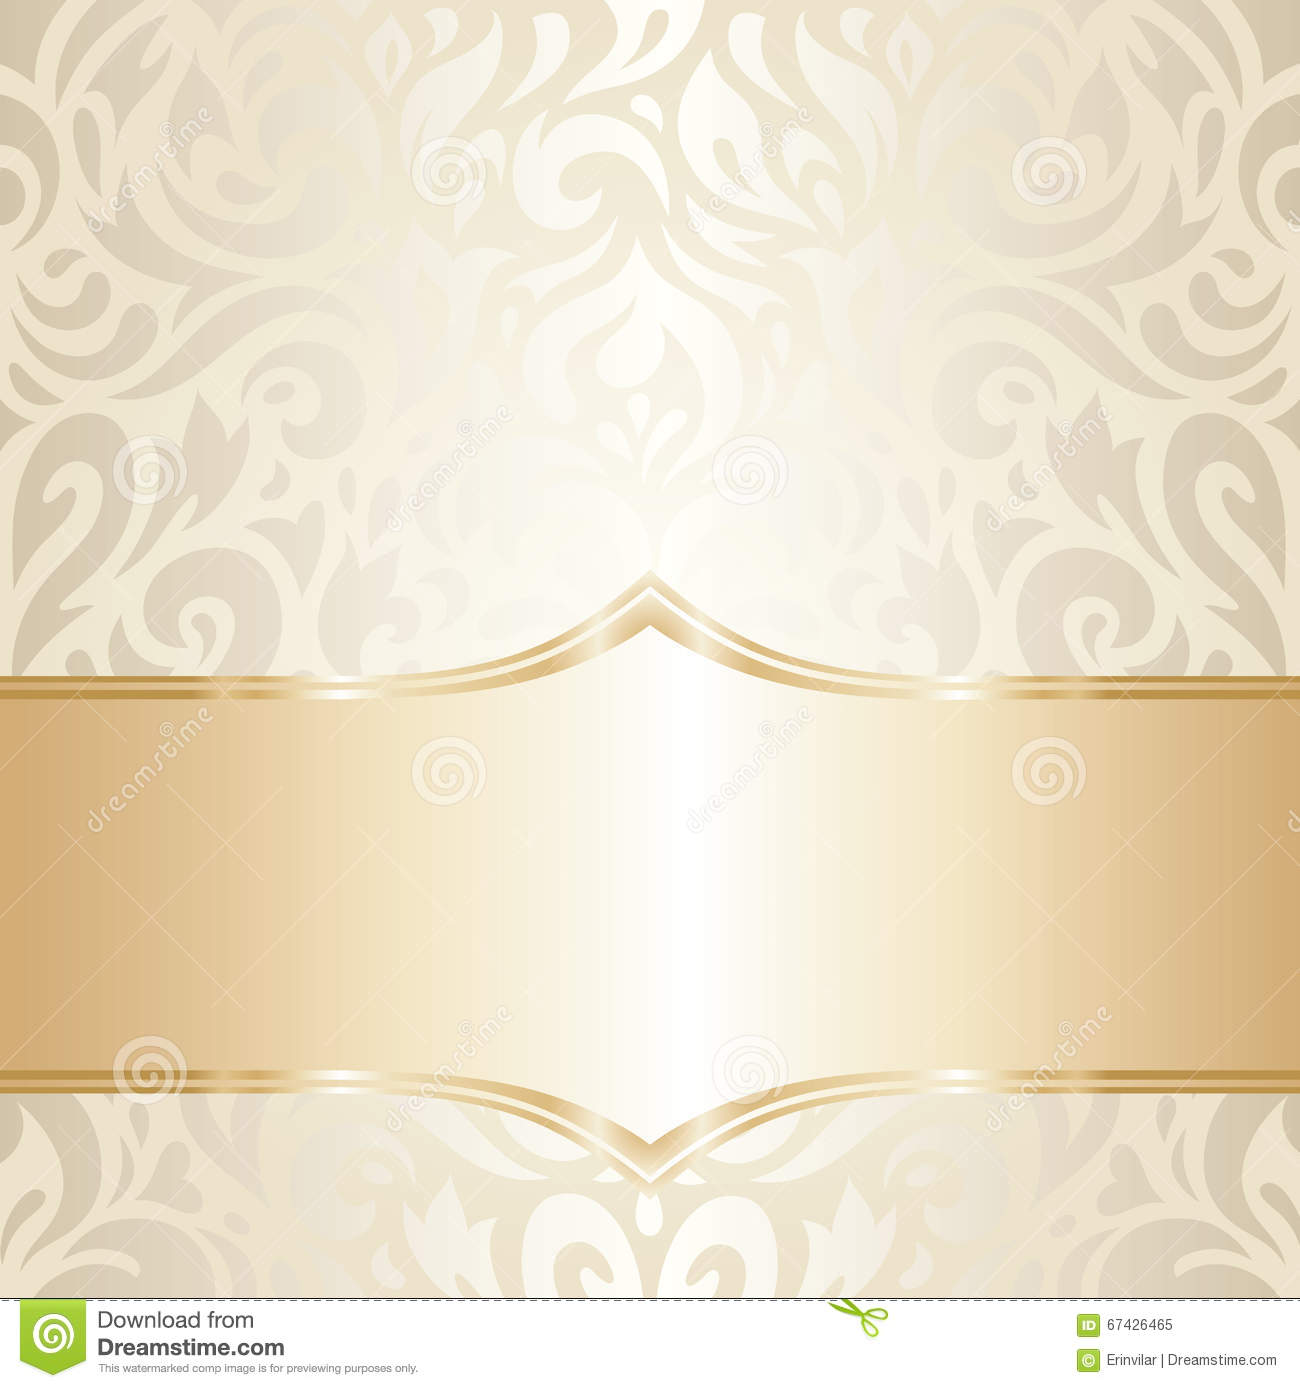 golden floral wedding vintage wallpaper design stock vector illustration of curl repetition 67426465 dreamstime com